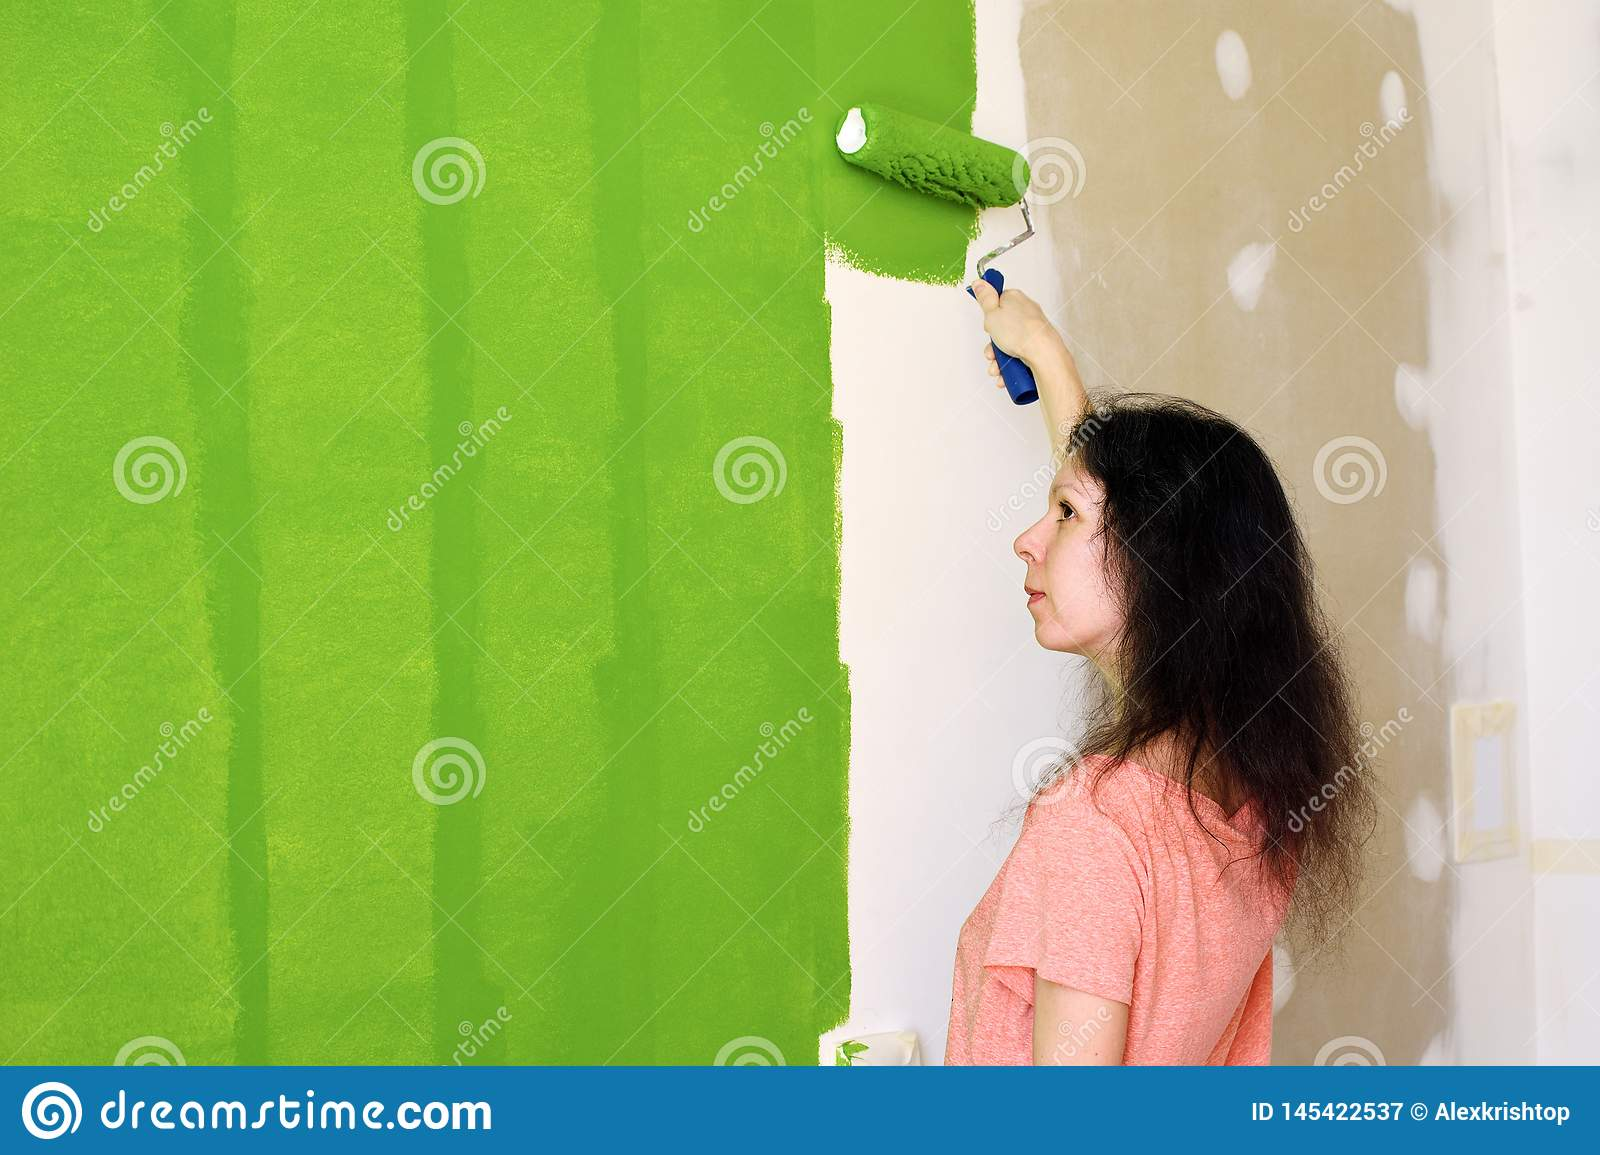 Profile of a pretty young woman in pink t-shirt is carefully painting green interior wall with roller in a new home and evaluating